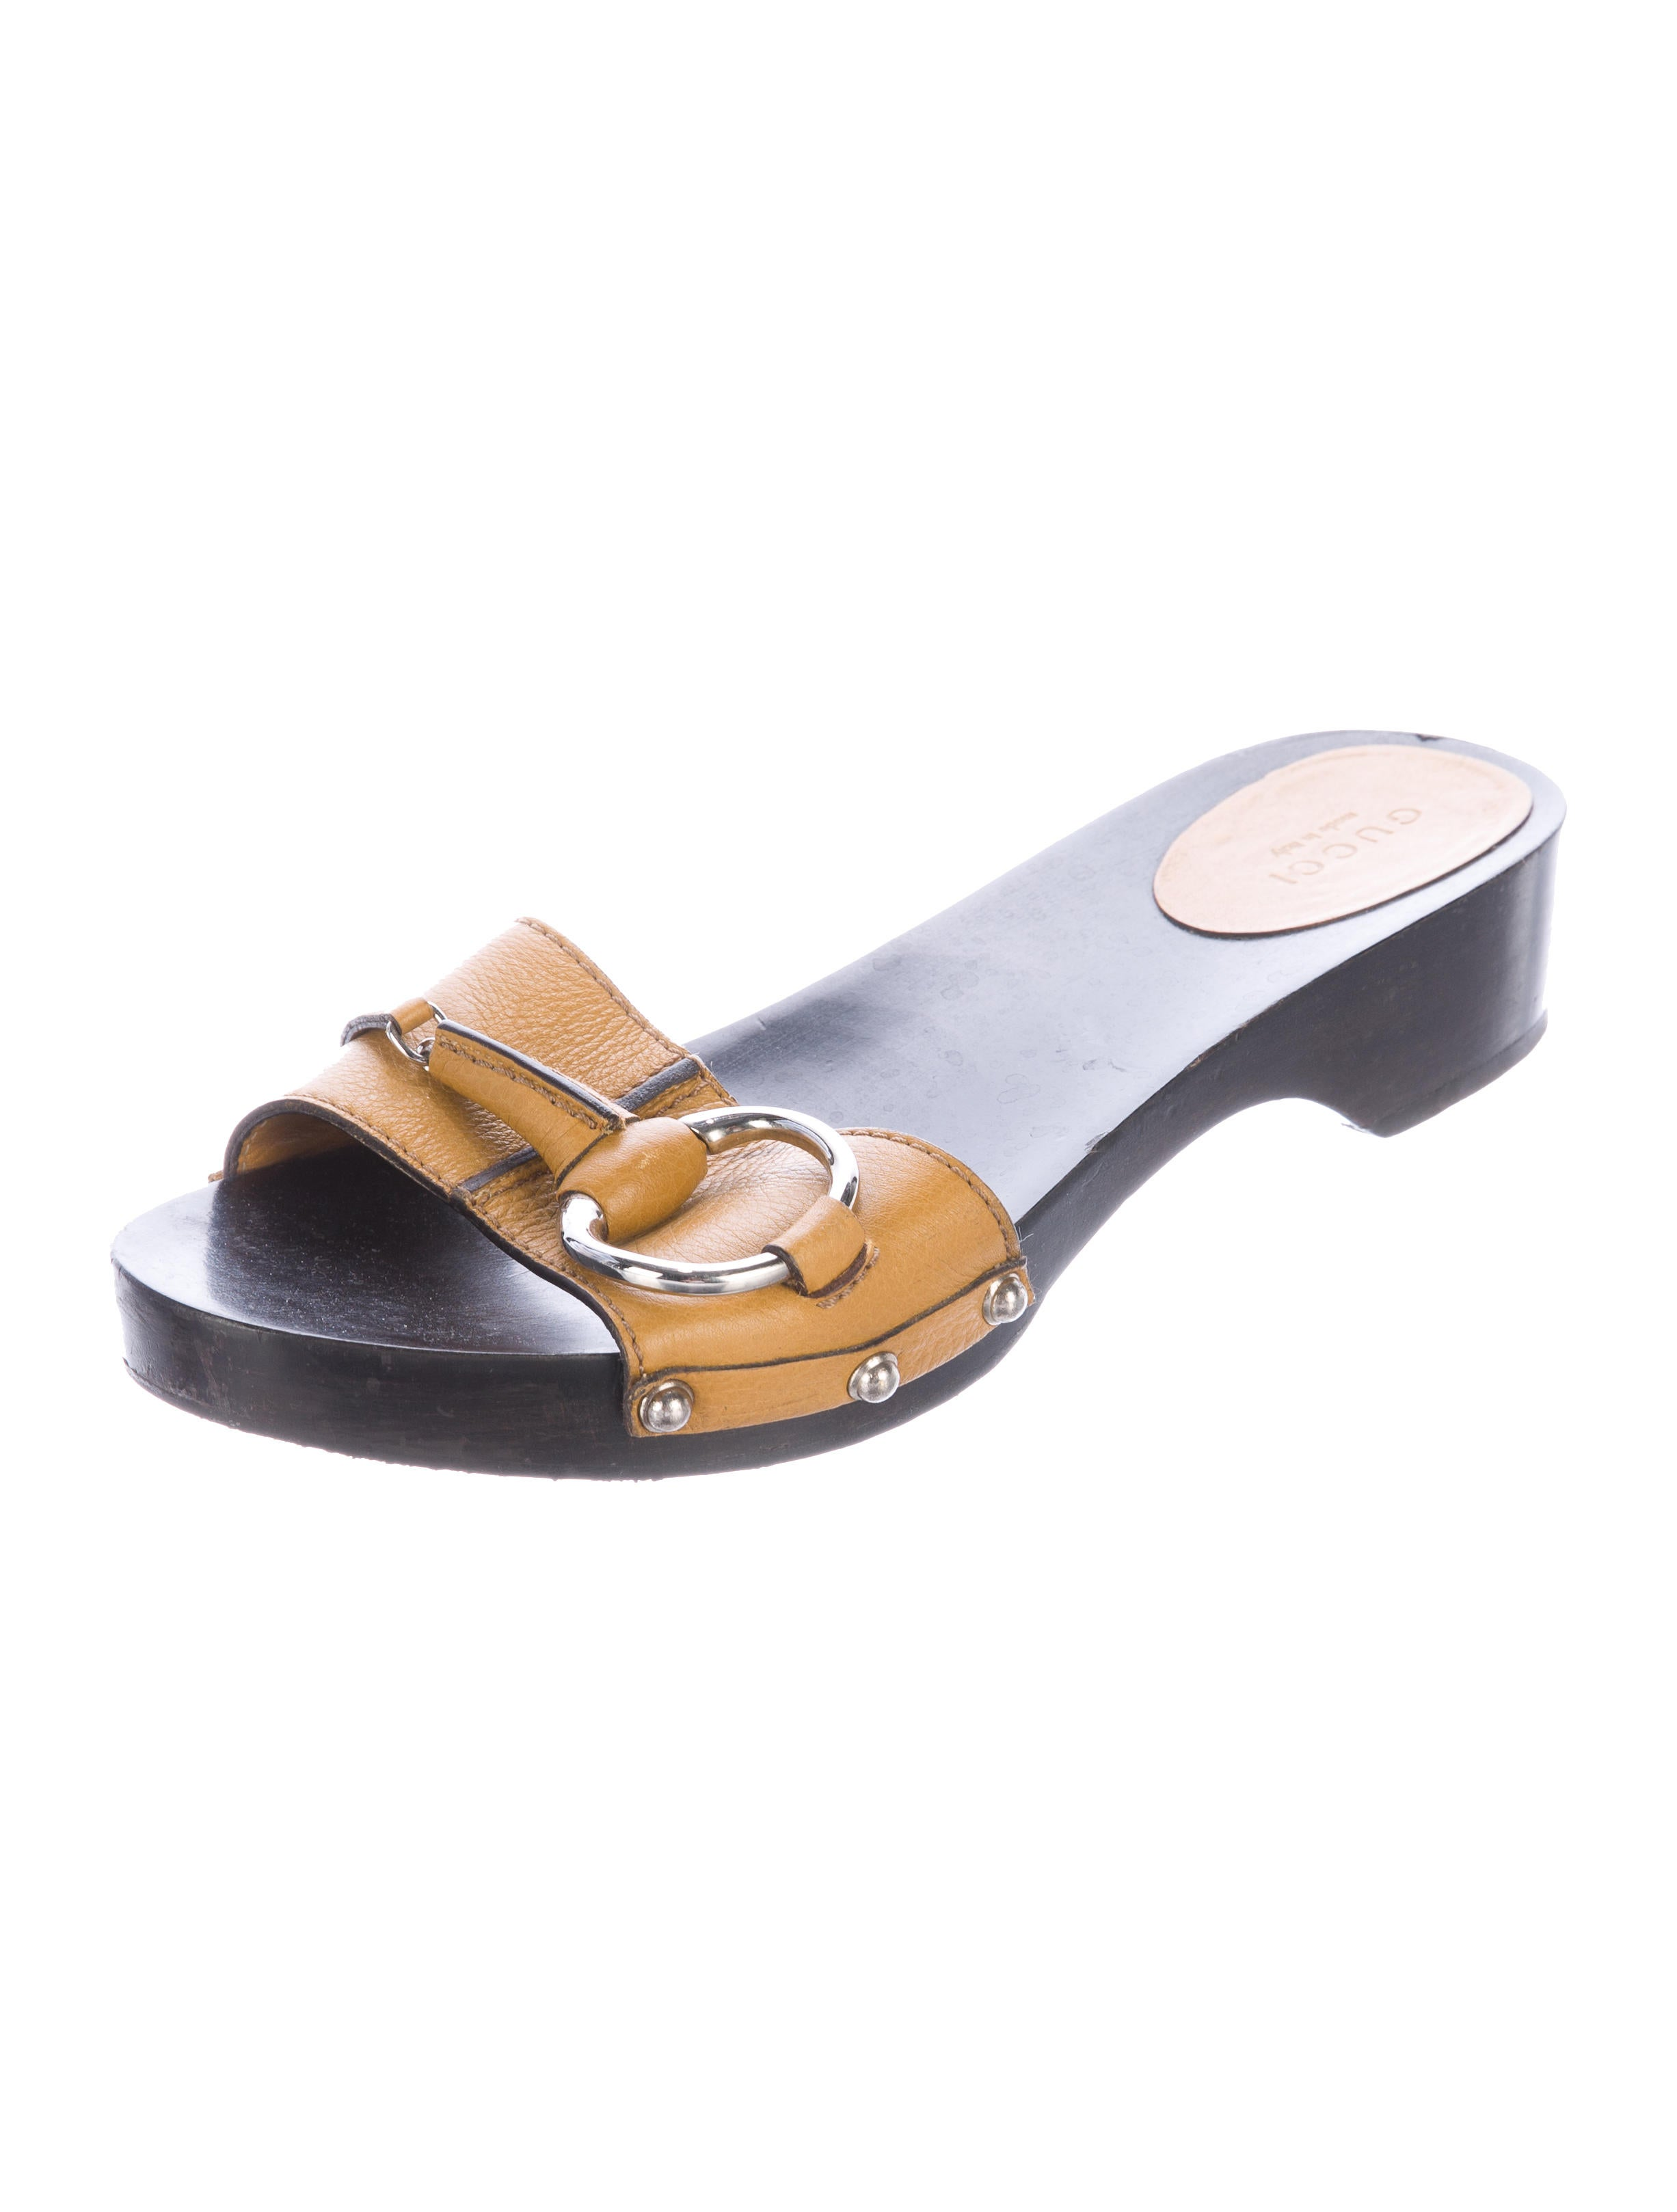 Gucci Leather Slide Sandals - Shoes - GUC146205 | The RealReal